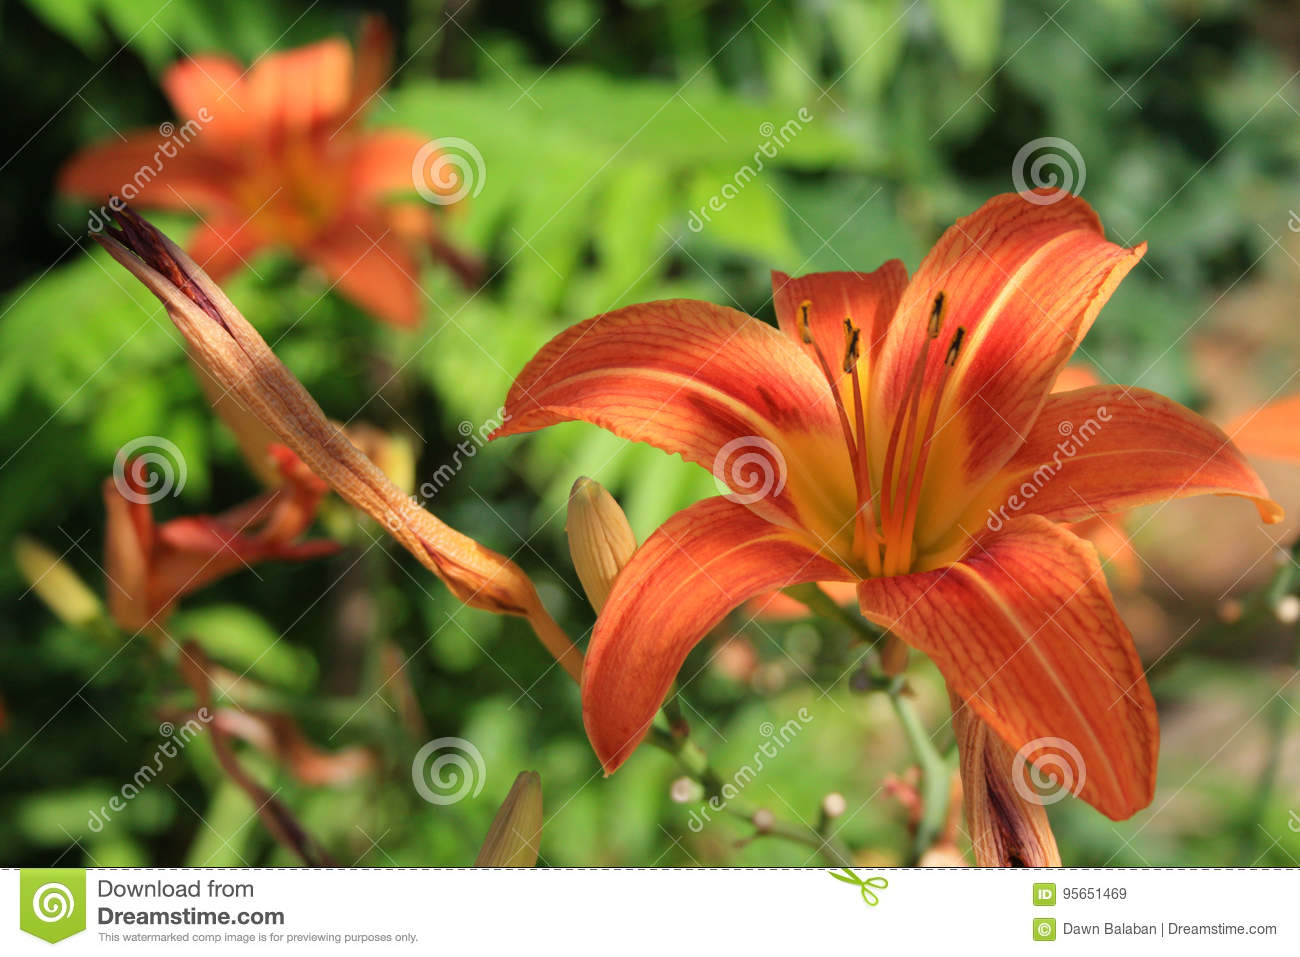 Orange tiger lilies flowers two shot close up stock image image of orange tiger lilies flowers two shot close up izmirmasajfo Images